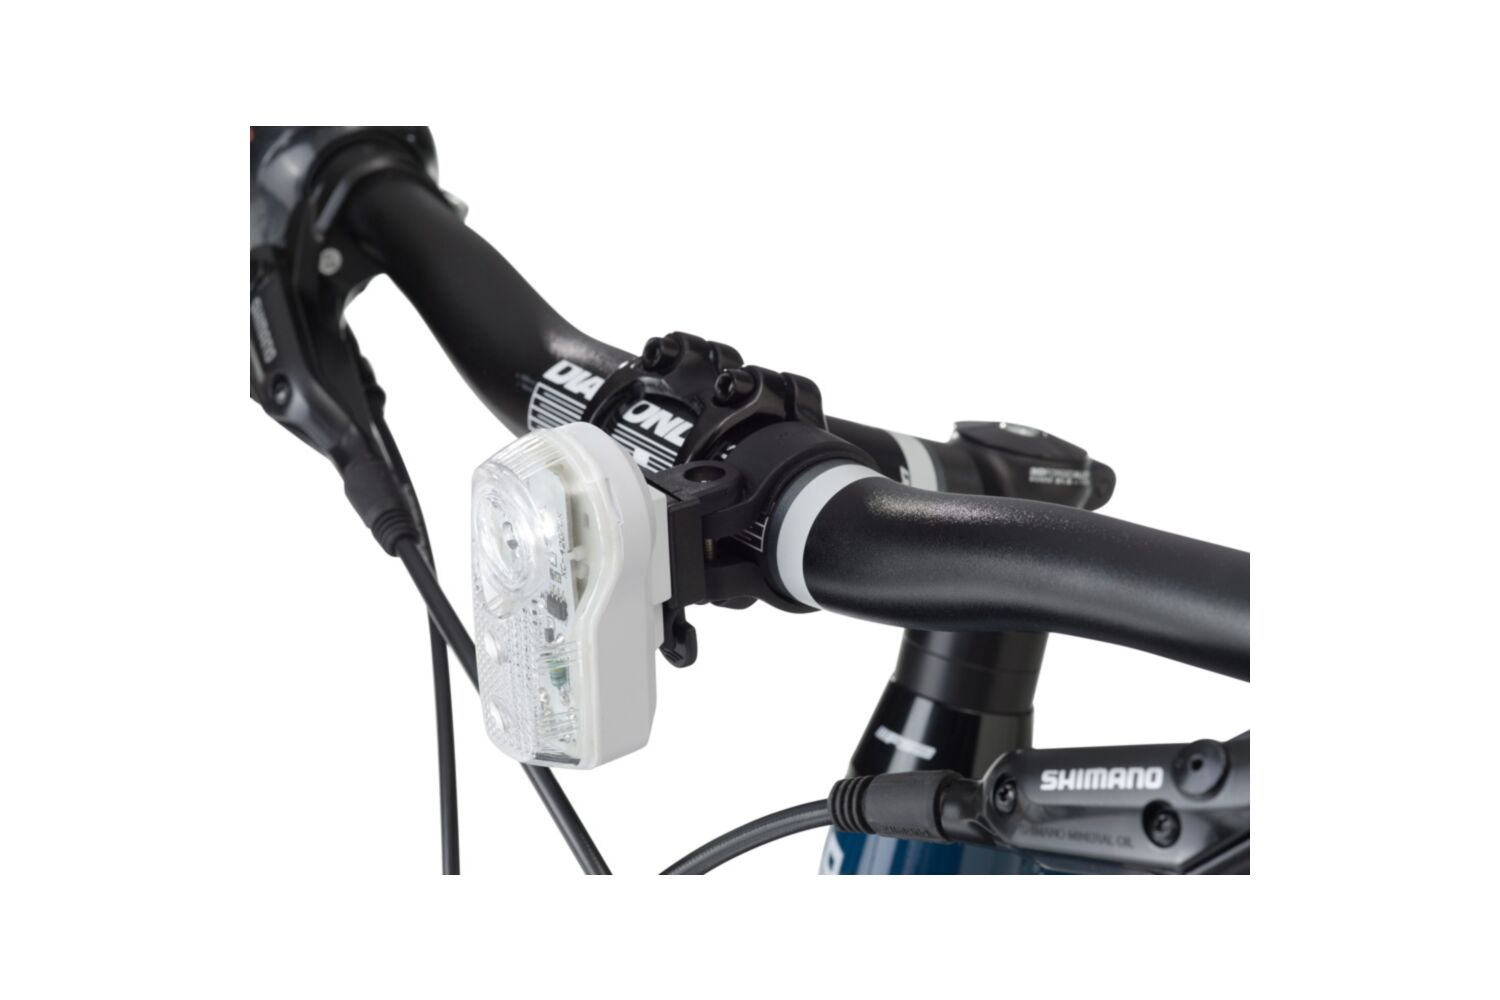 Panorama 1/2 Watt LED Bike Light Set